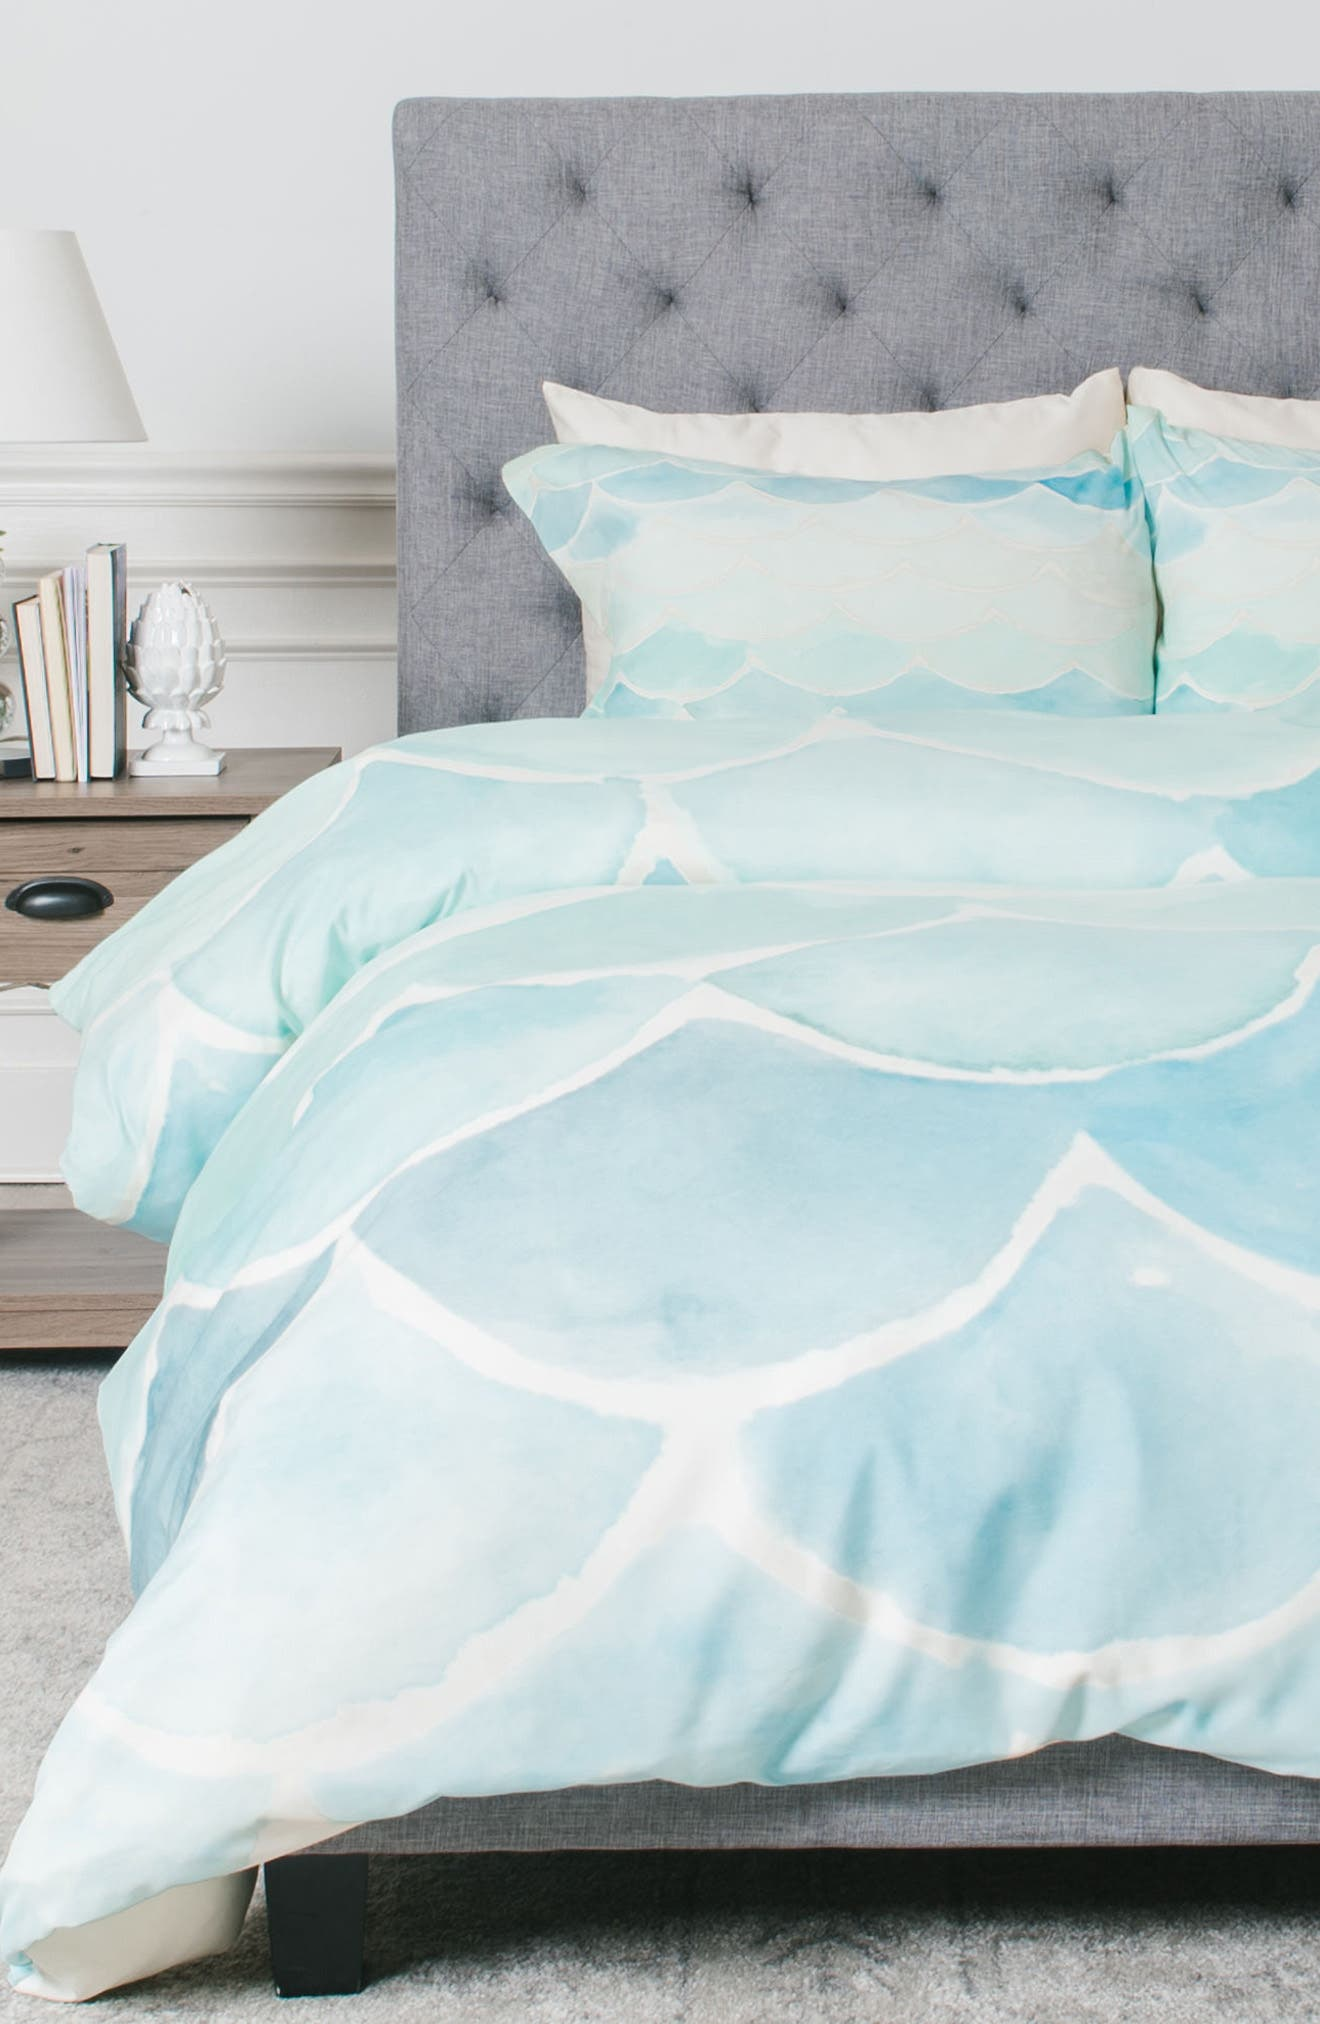 Main Image - DENY Designs Mermaid Scales Duvet Cover & Sham Set